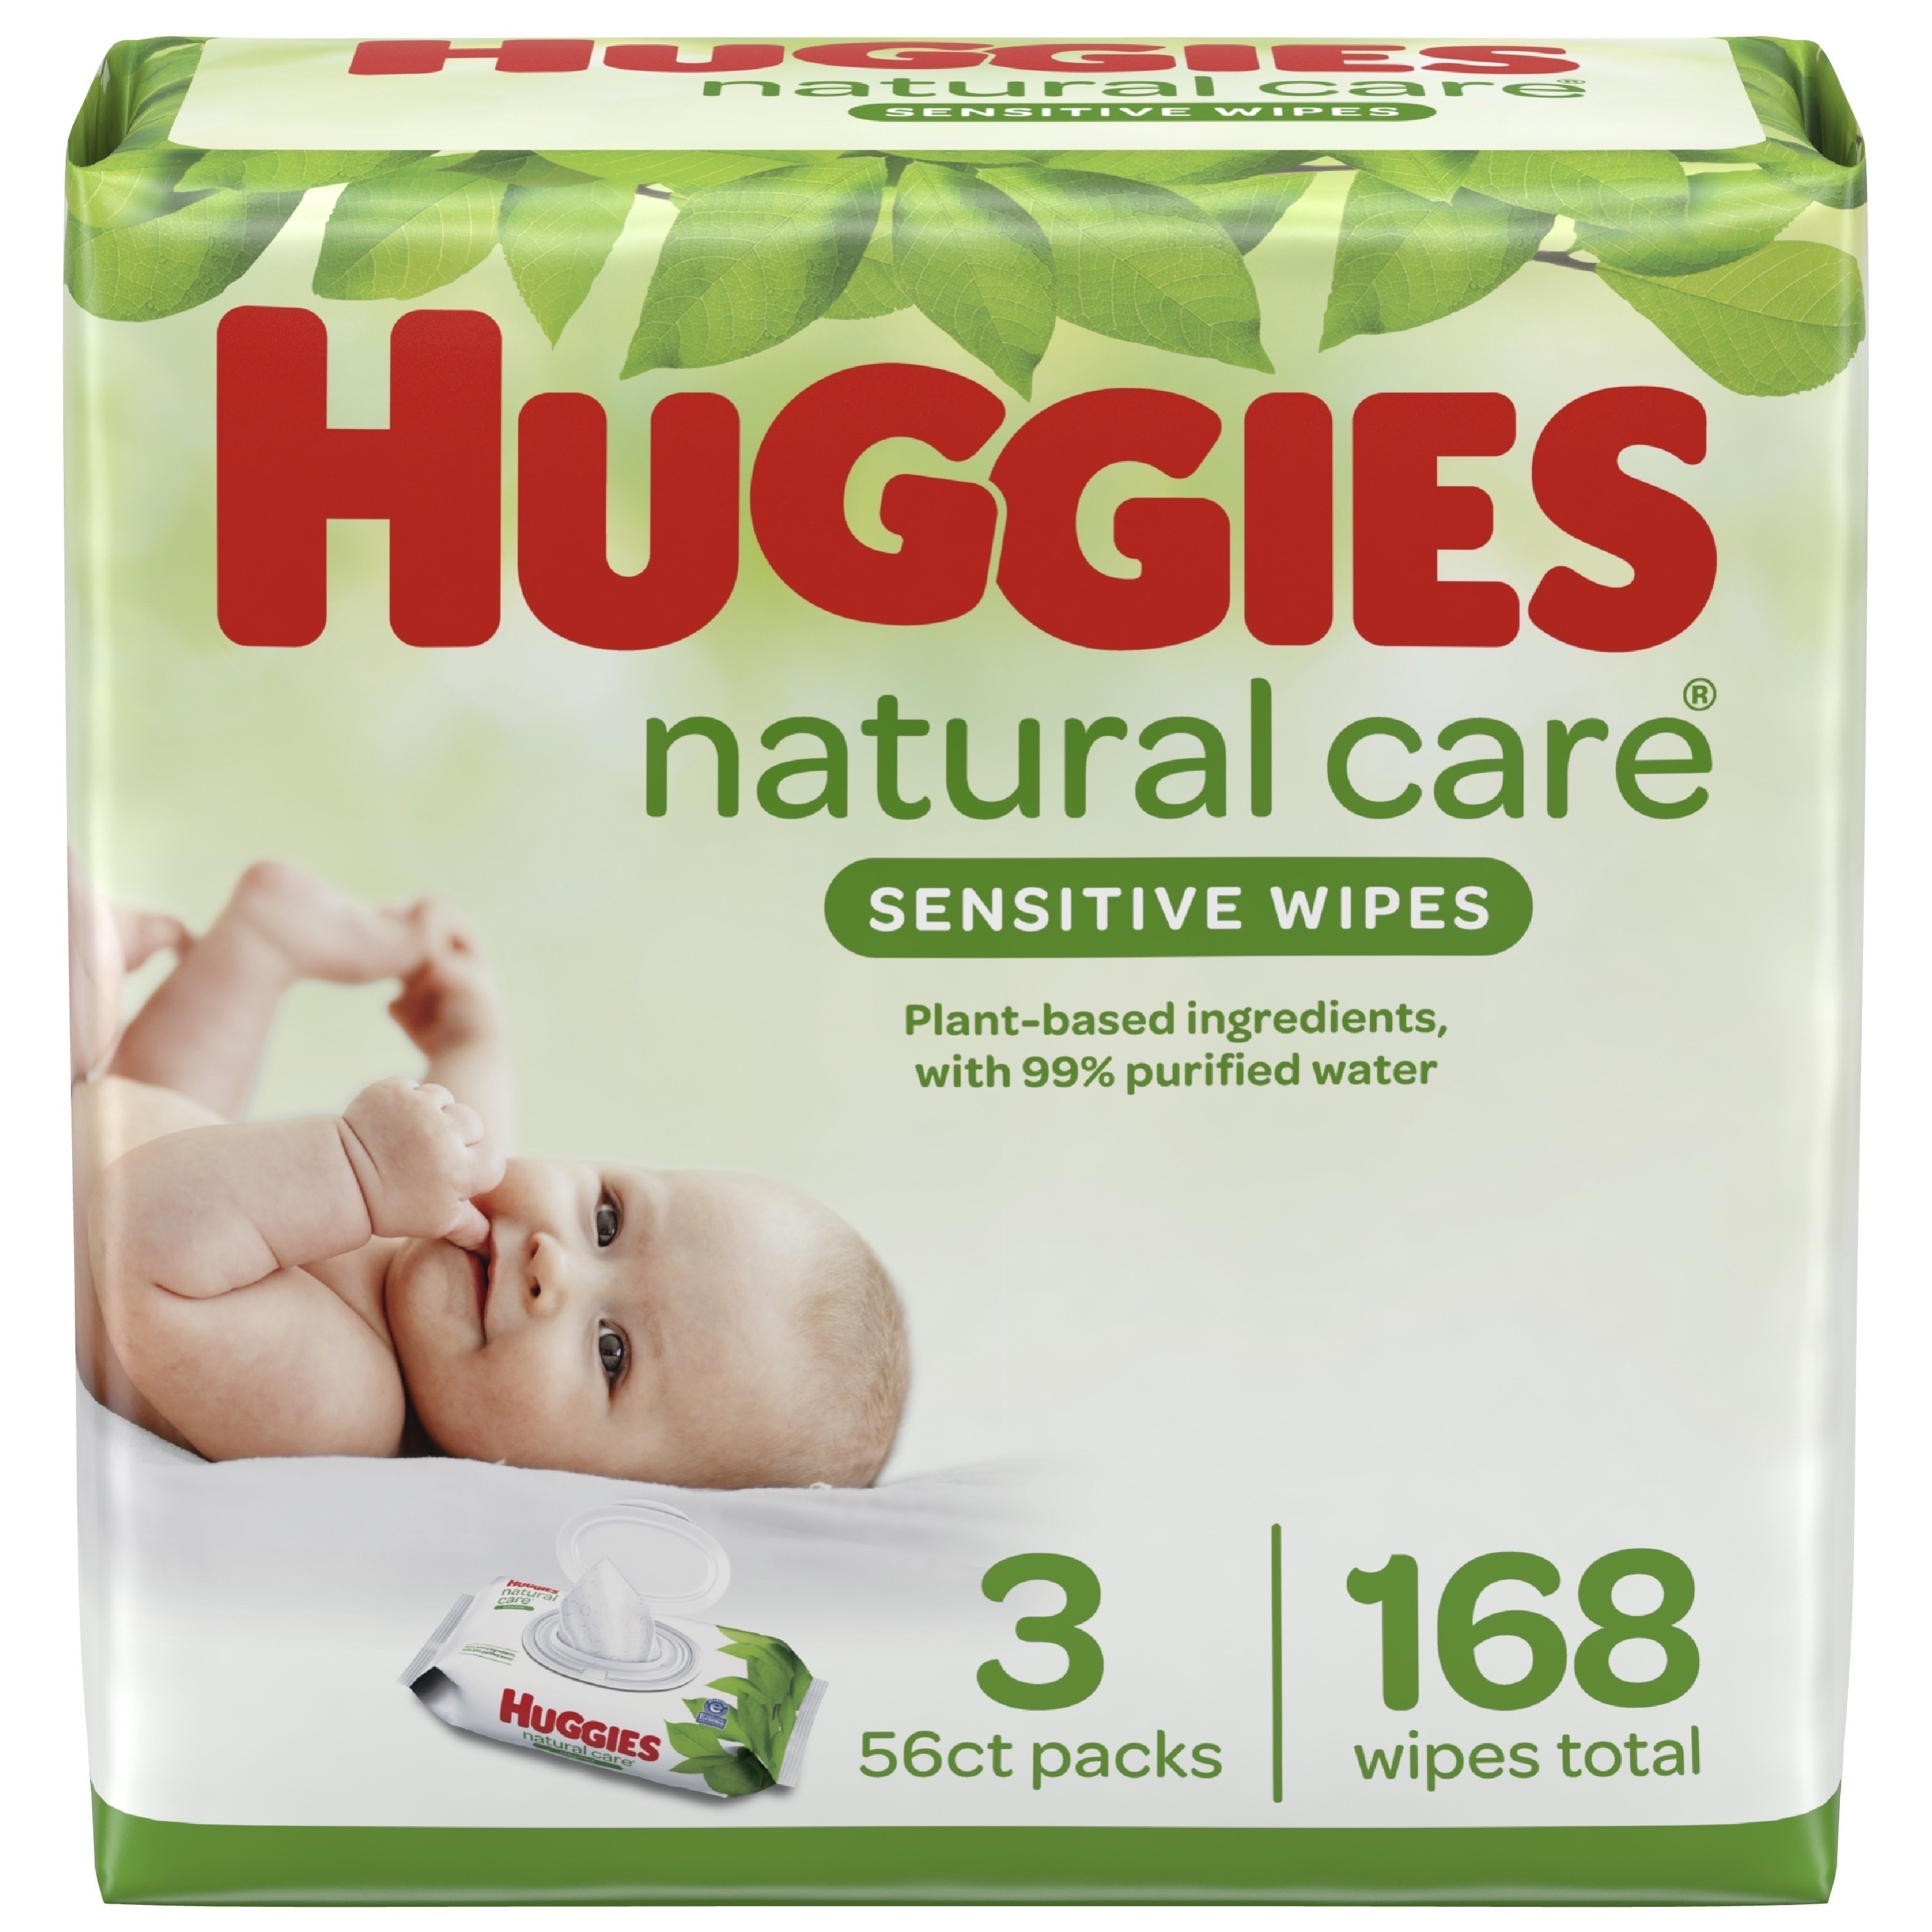 Huggies Natural Care Sensitive Baby Wipes, Unscented, 3 Flip-Top Packs (168 Wipes Total)